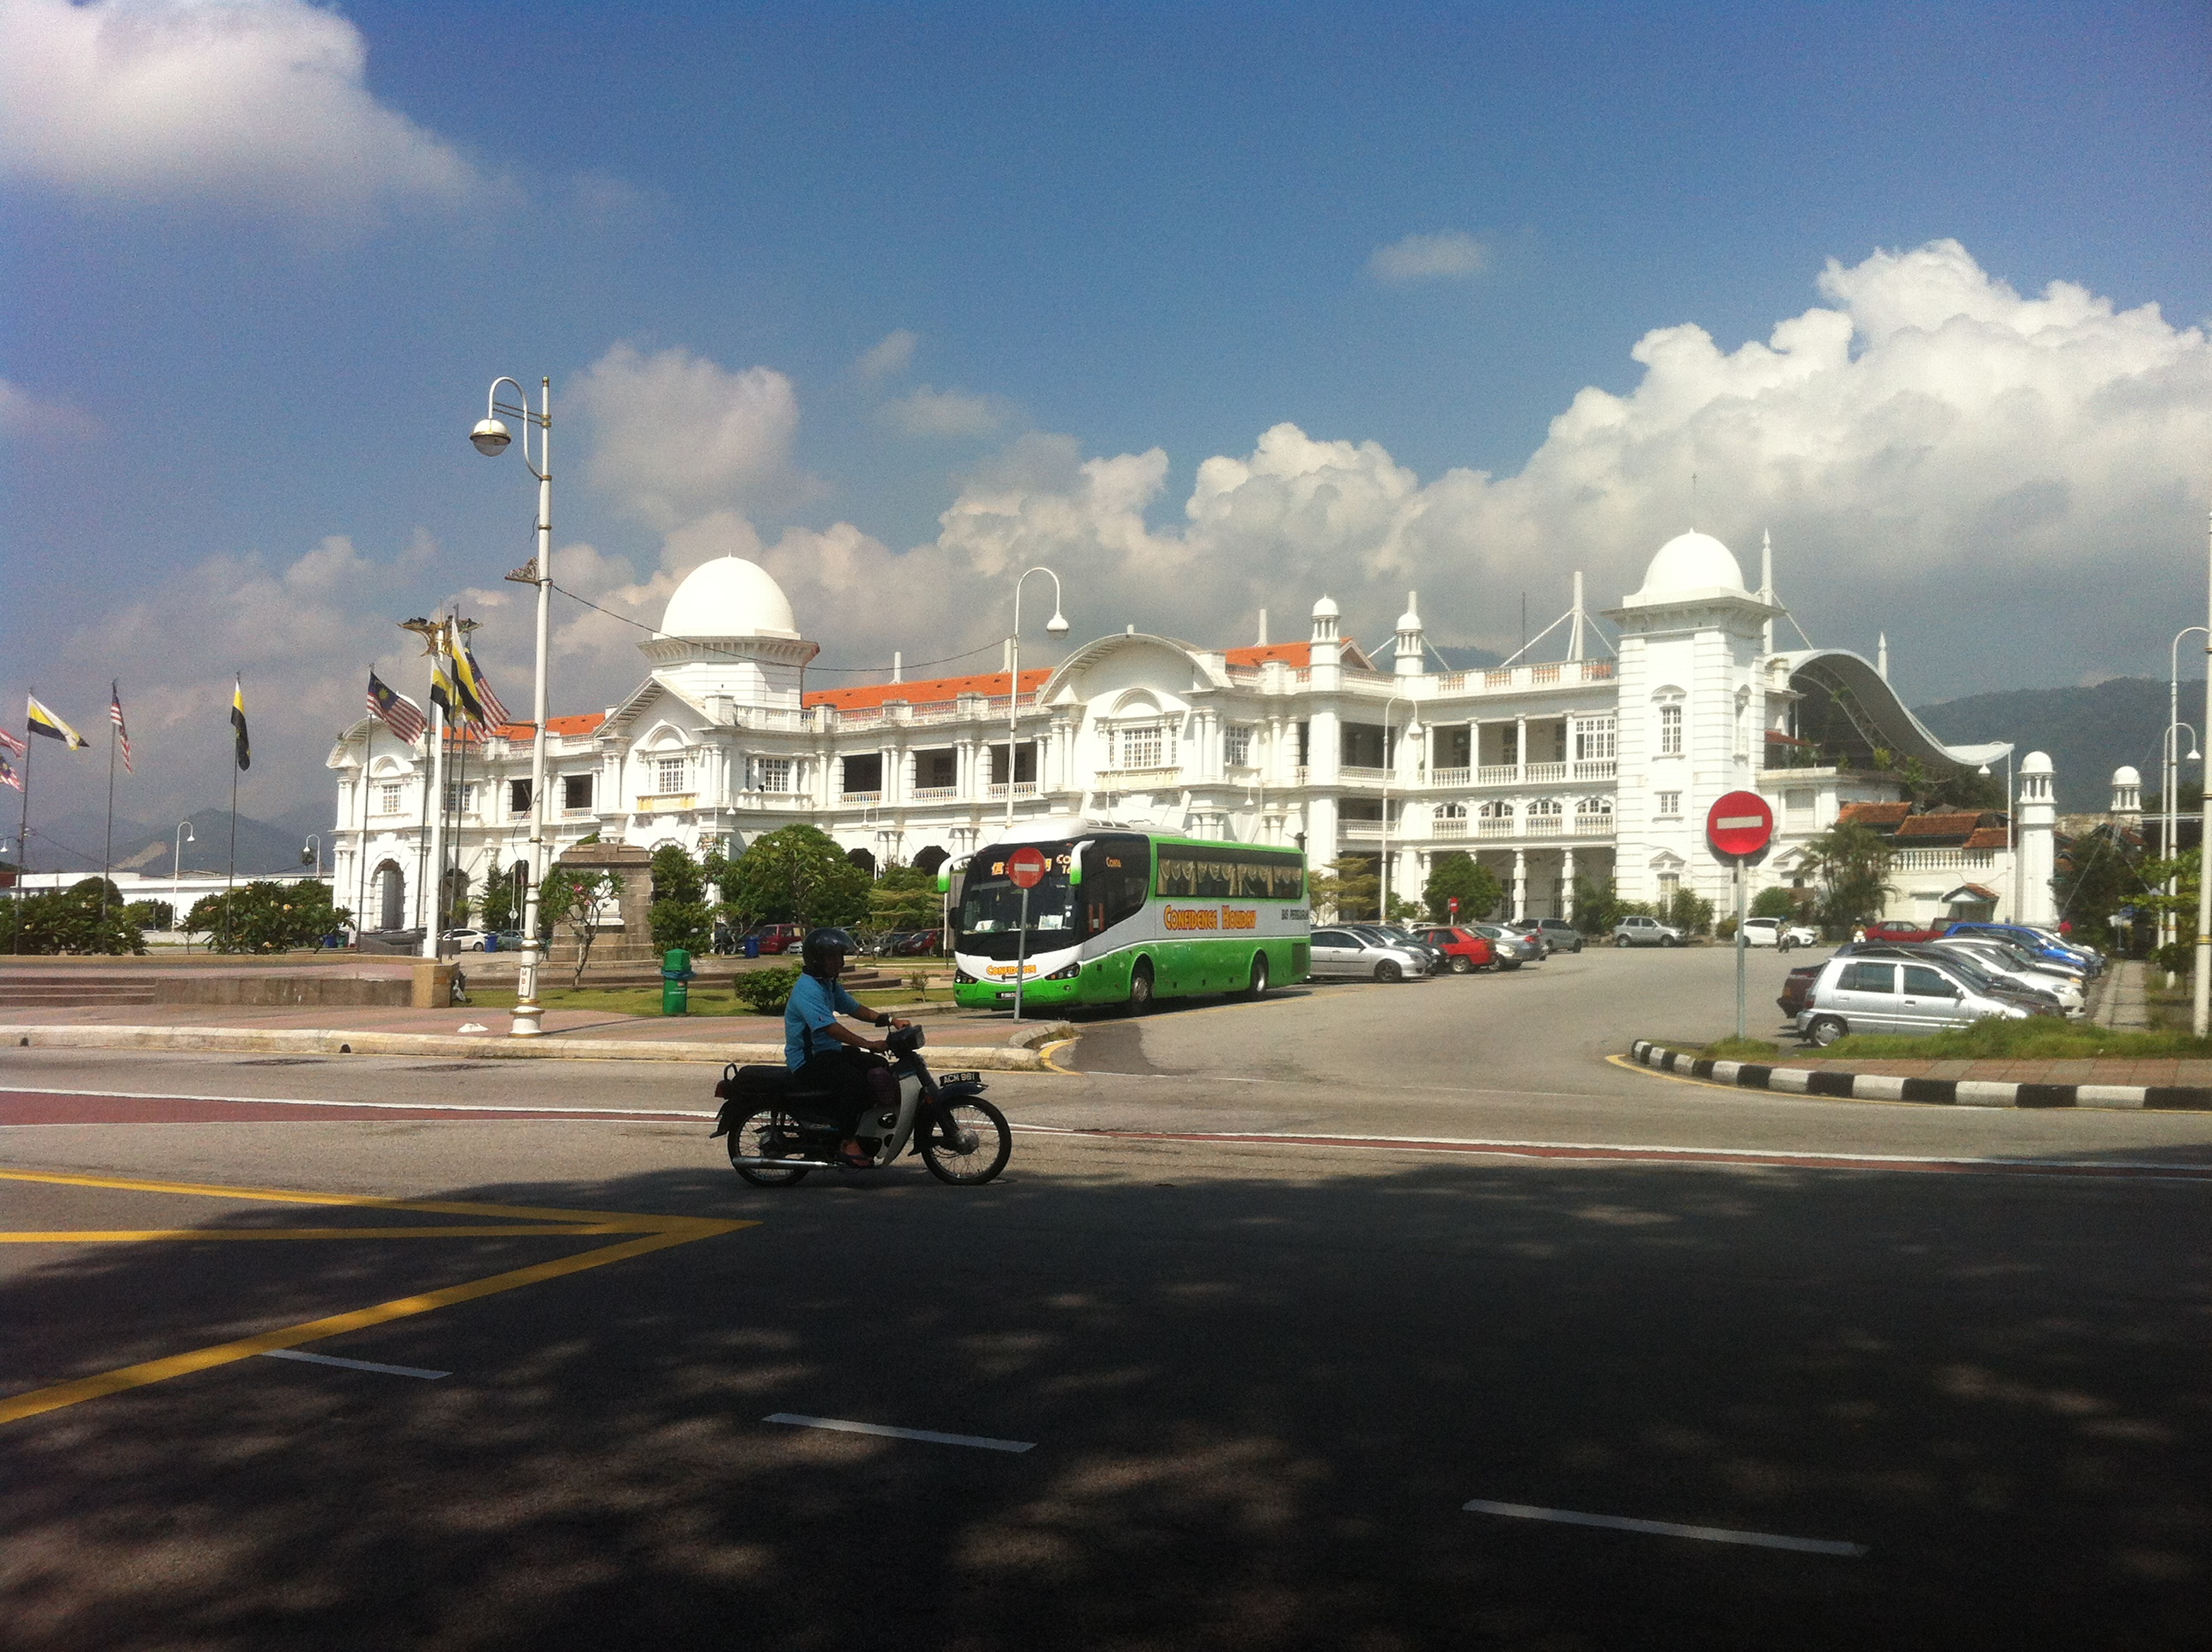 KL food tour and a visit to Ipoh